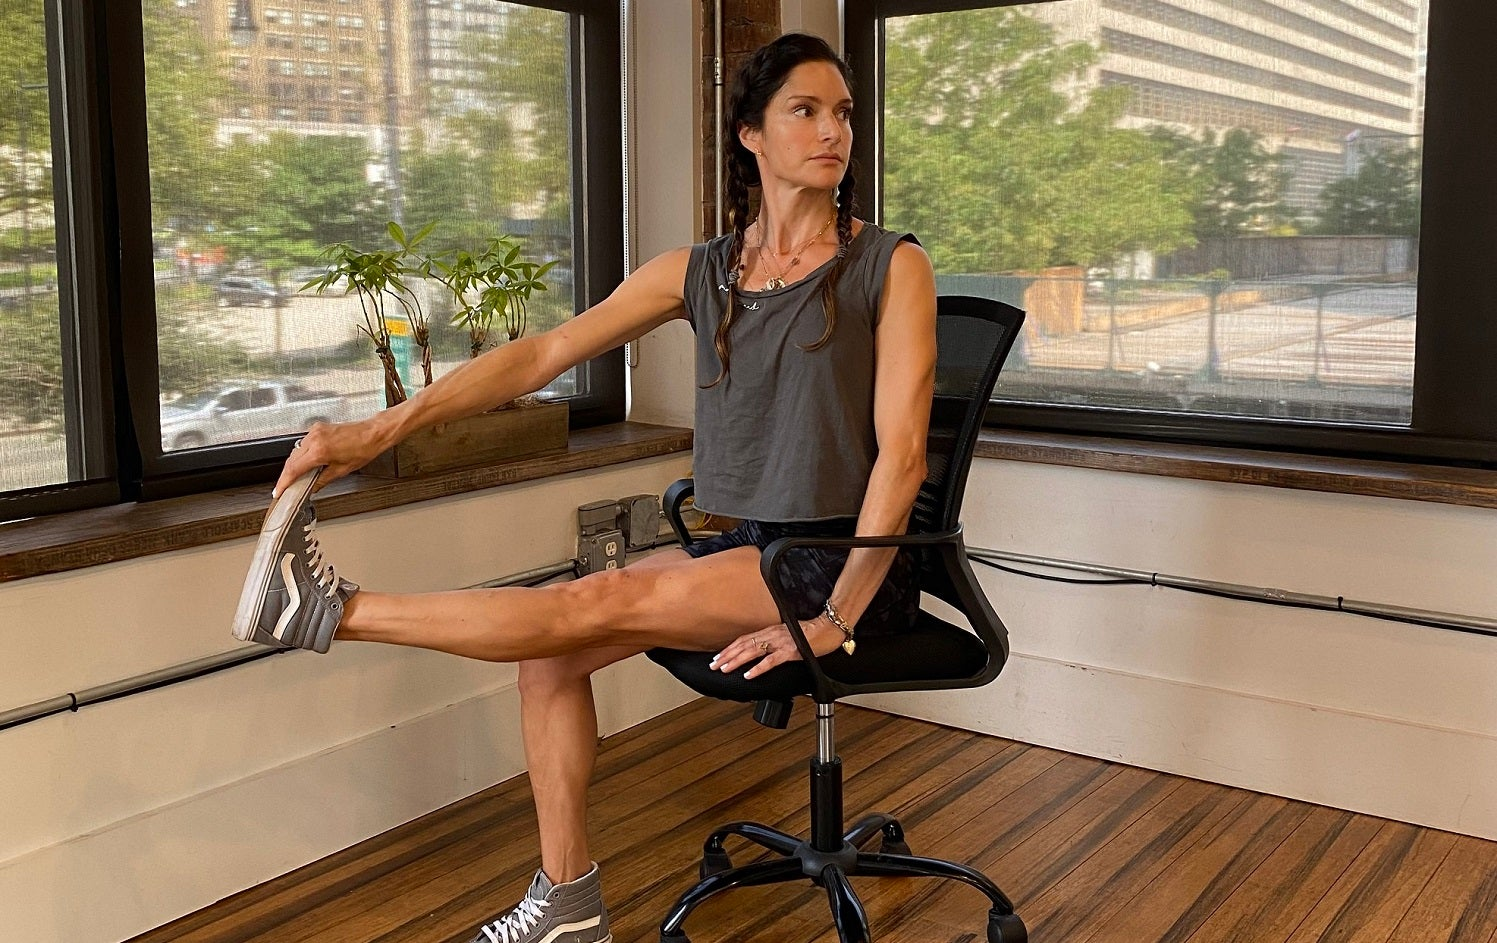 Lynda Gehrman demonstrates a seated calf raise